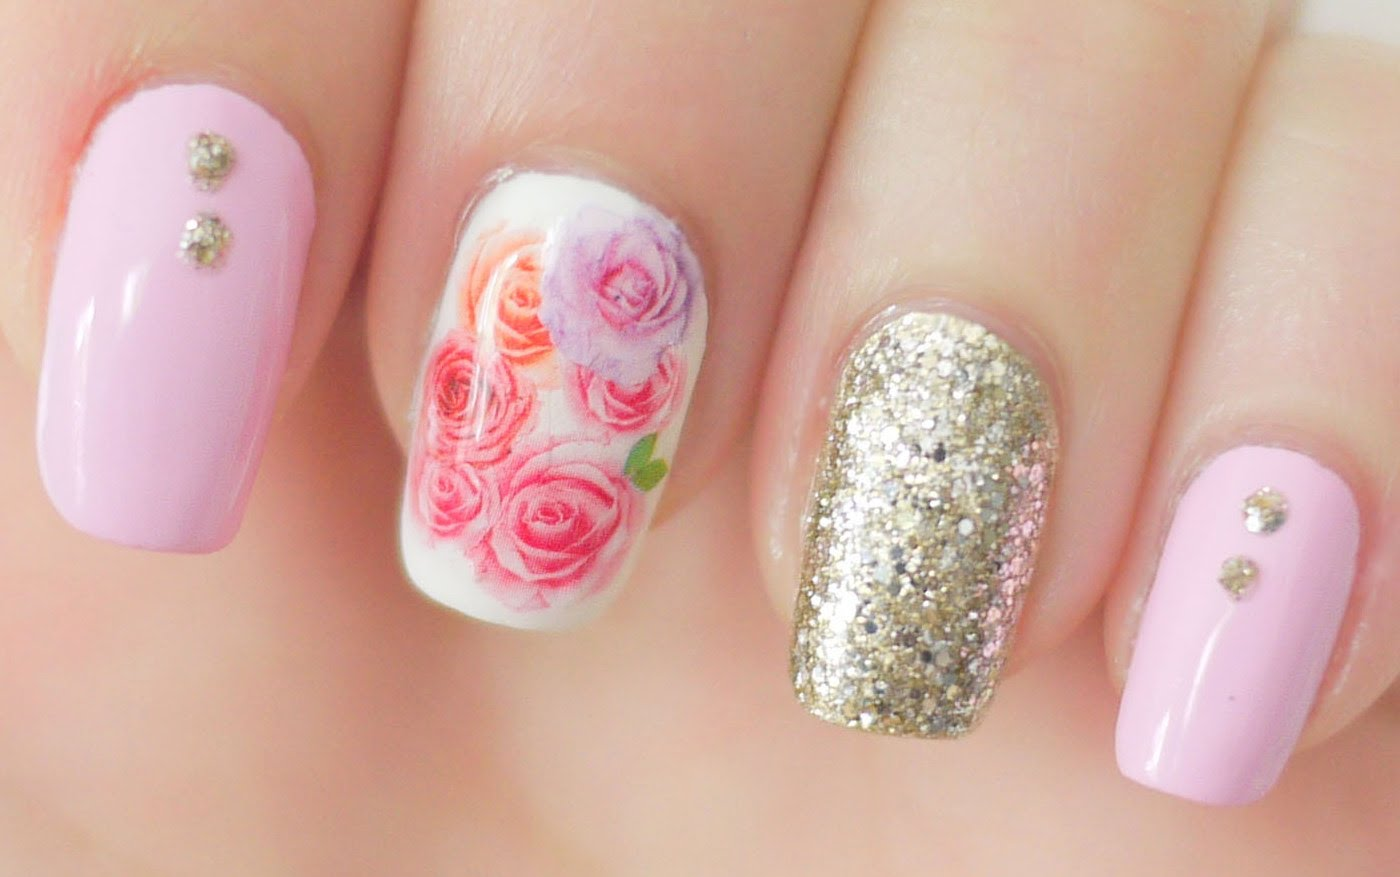 These Beautiful Rose Nail Water Decals Are An Easy Alternative To Painting Your Fl Design